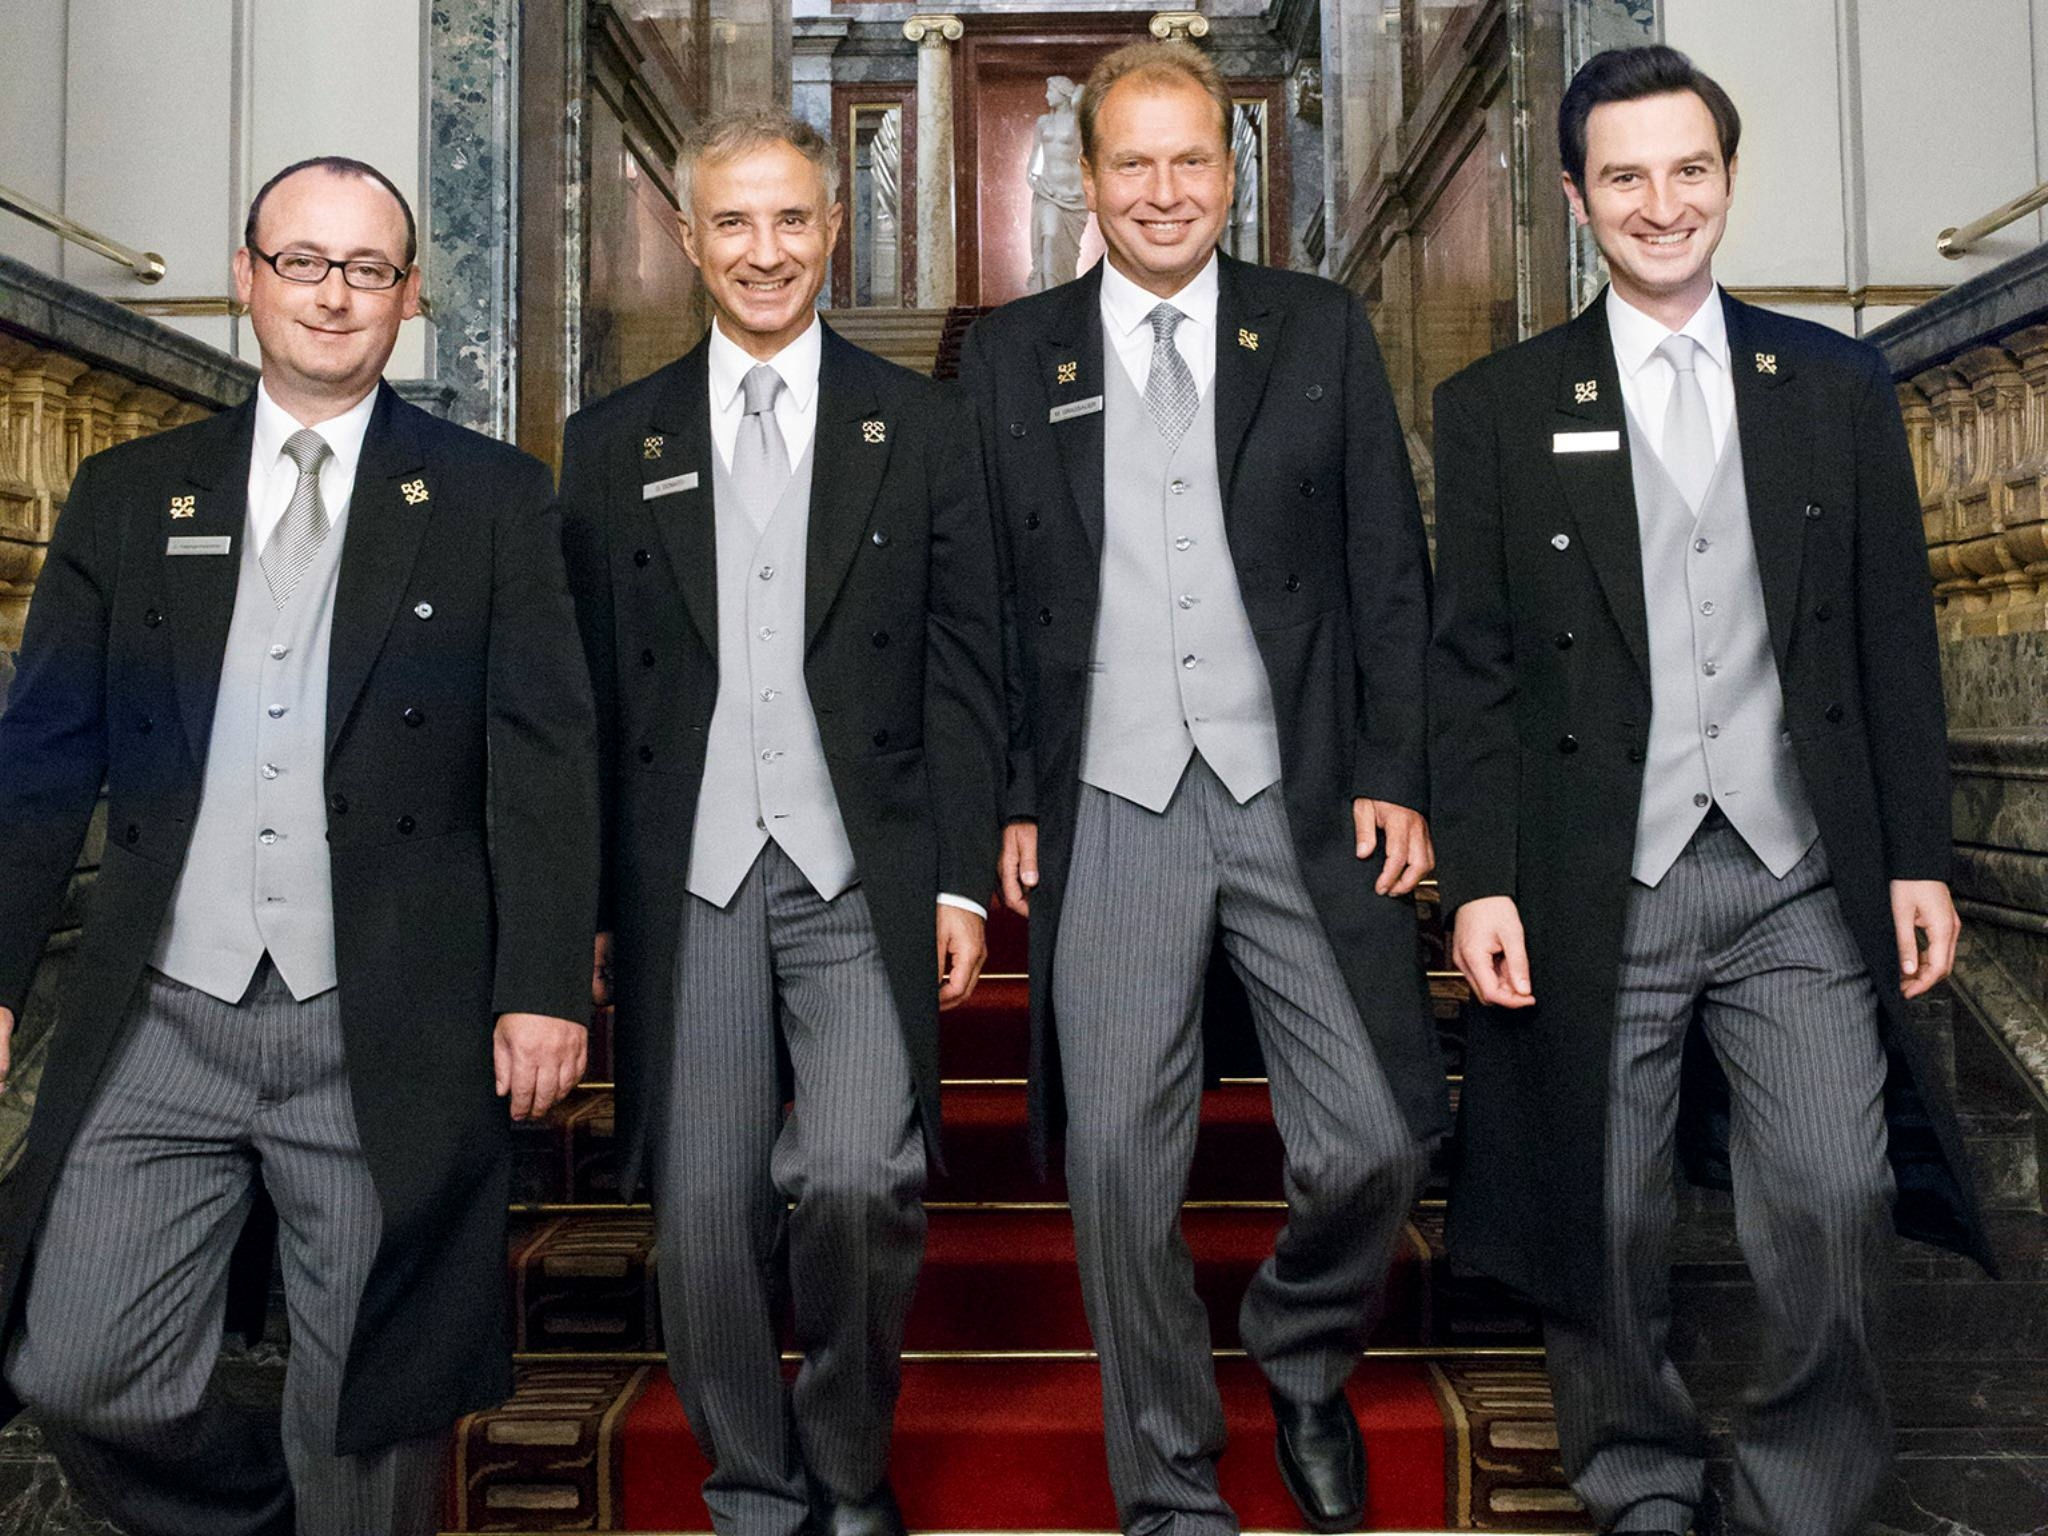 The Concierge at Hotel Imperial Vienna